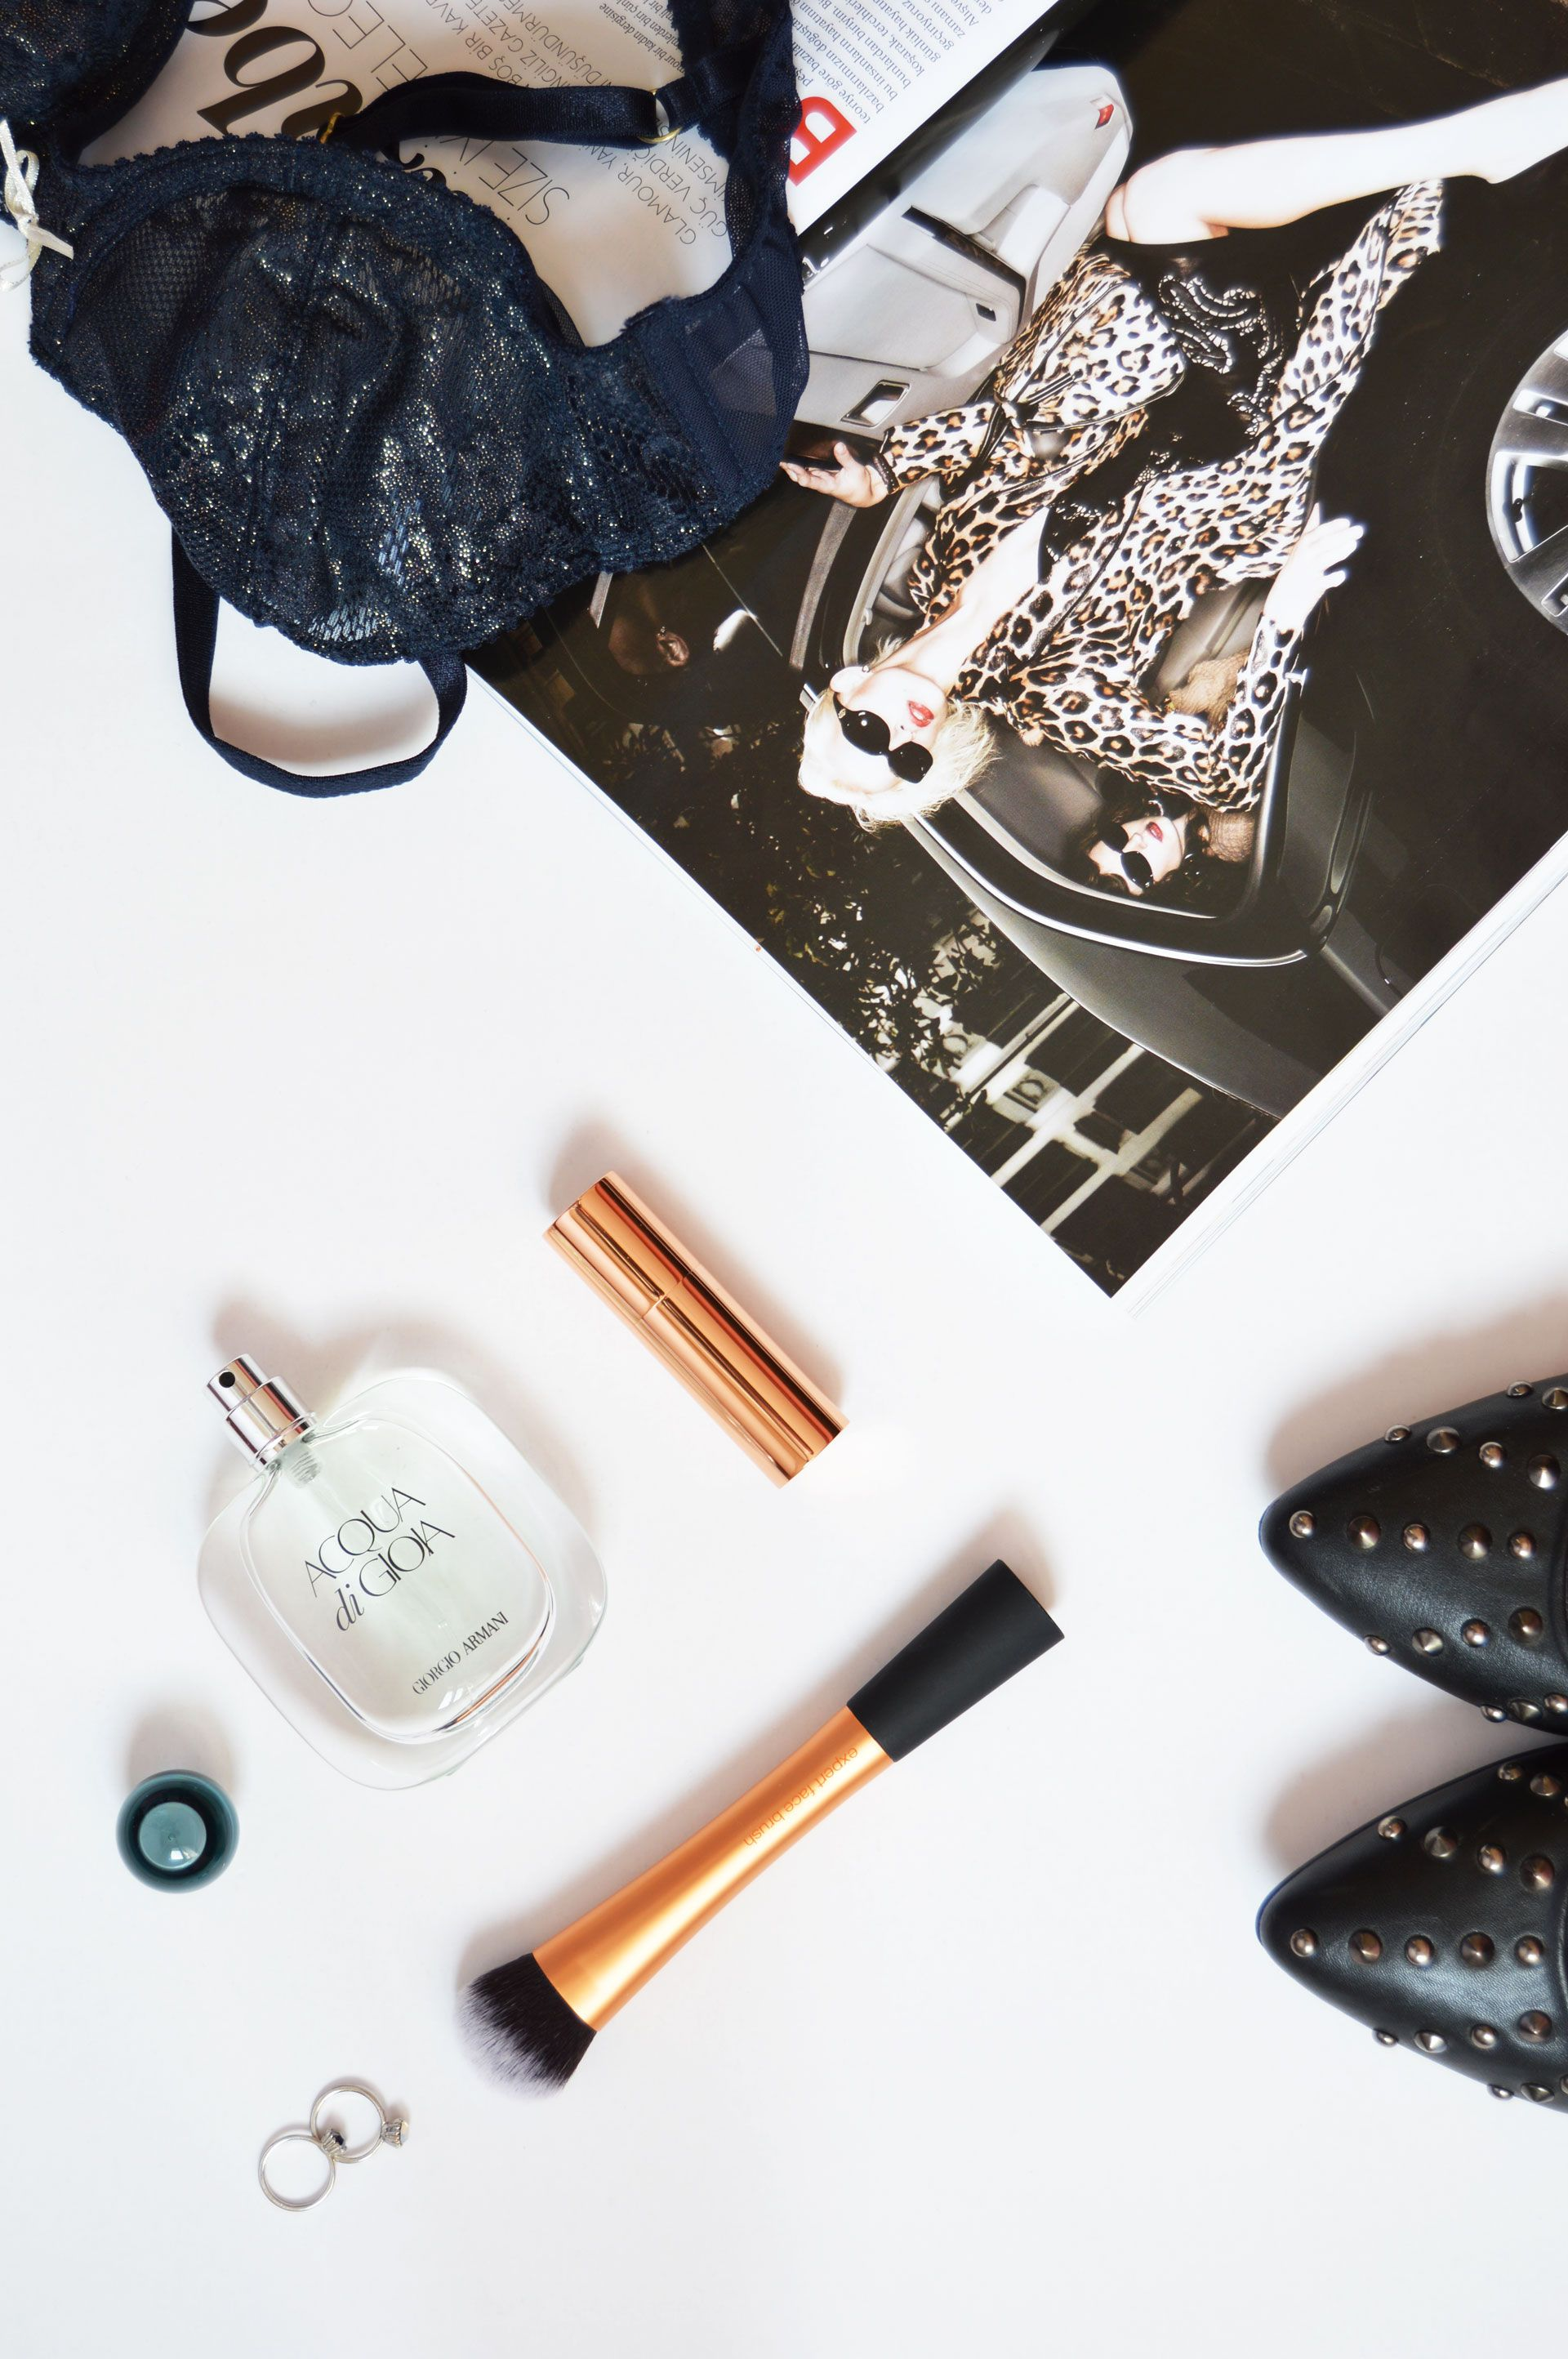 How to be more feminine | It is all about the way we feel about ourselves. With a few changes in daily routine can affect your femininity. Click through to check out all the tips.